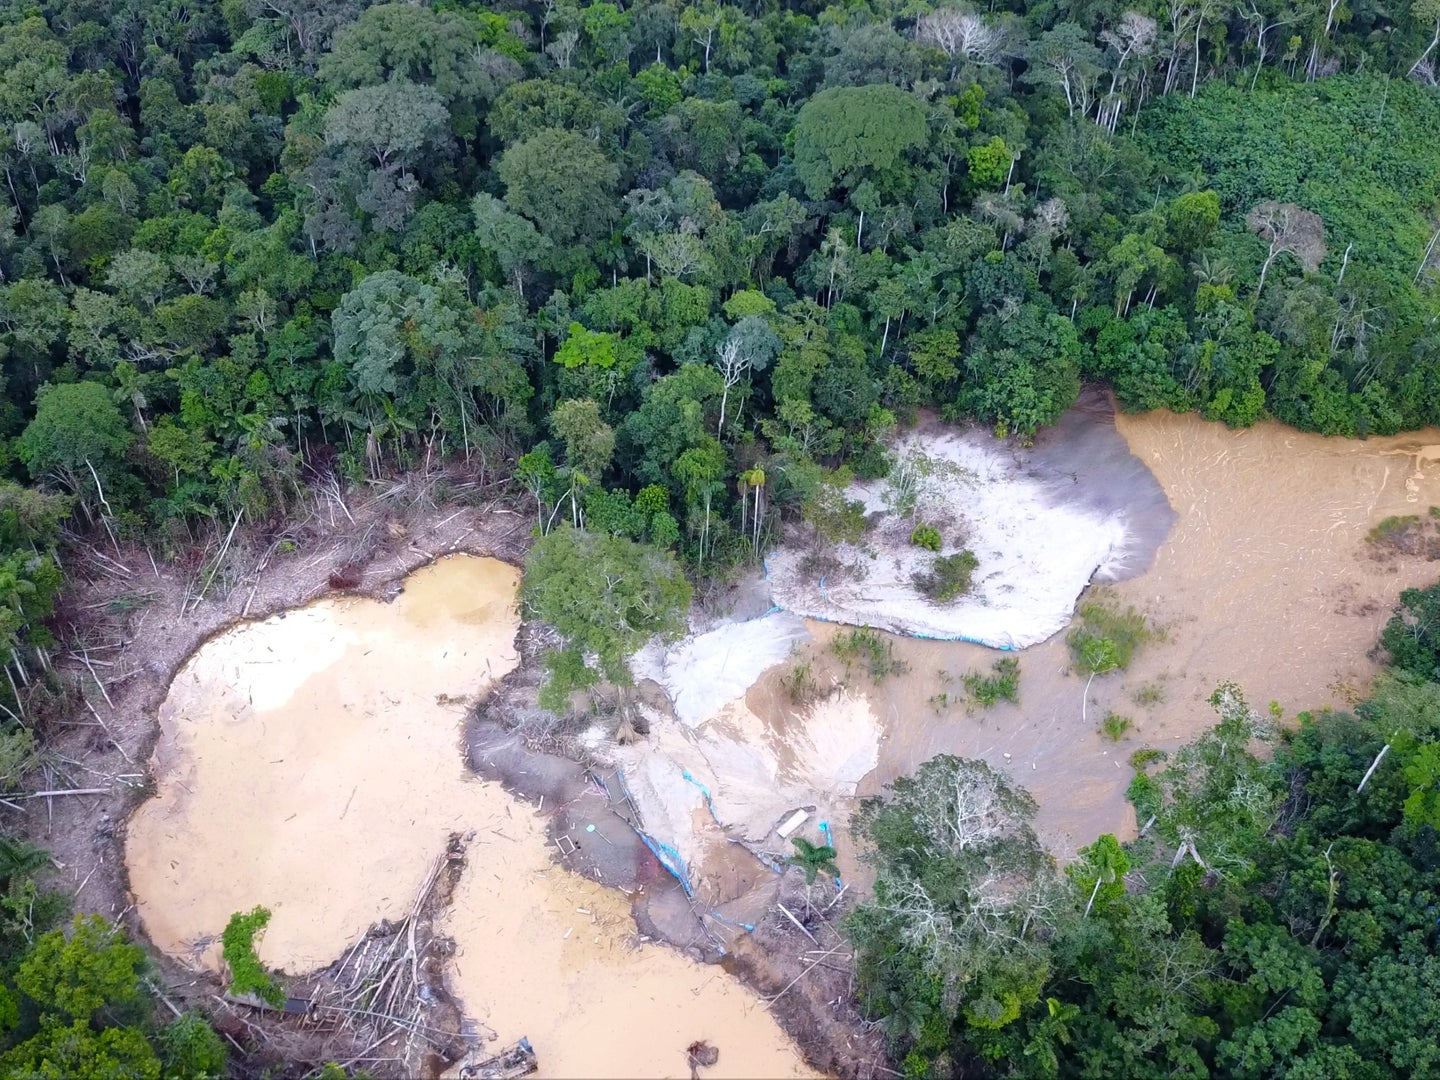 A drone-photograph shows an illegal mine in the middle of the Amazon rainforest. The image shows two artisanal pools, where the miners separate gold from rocks using mercury.